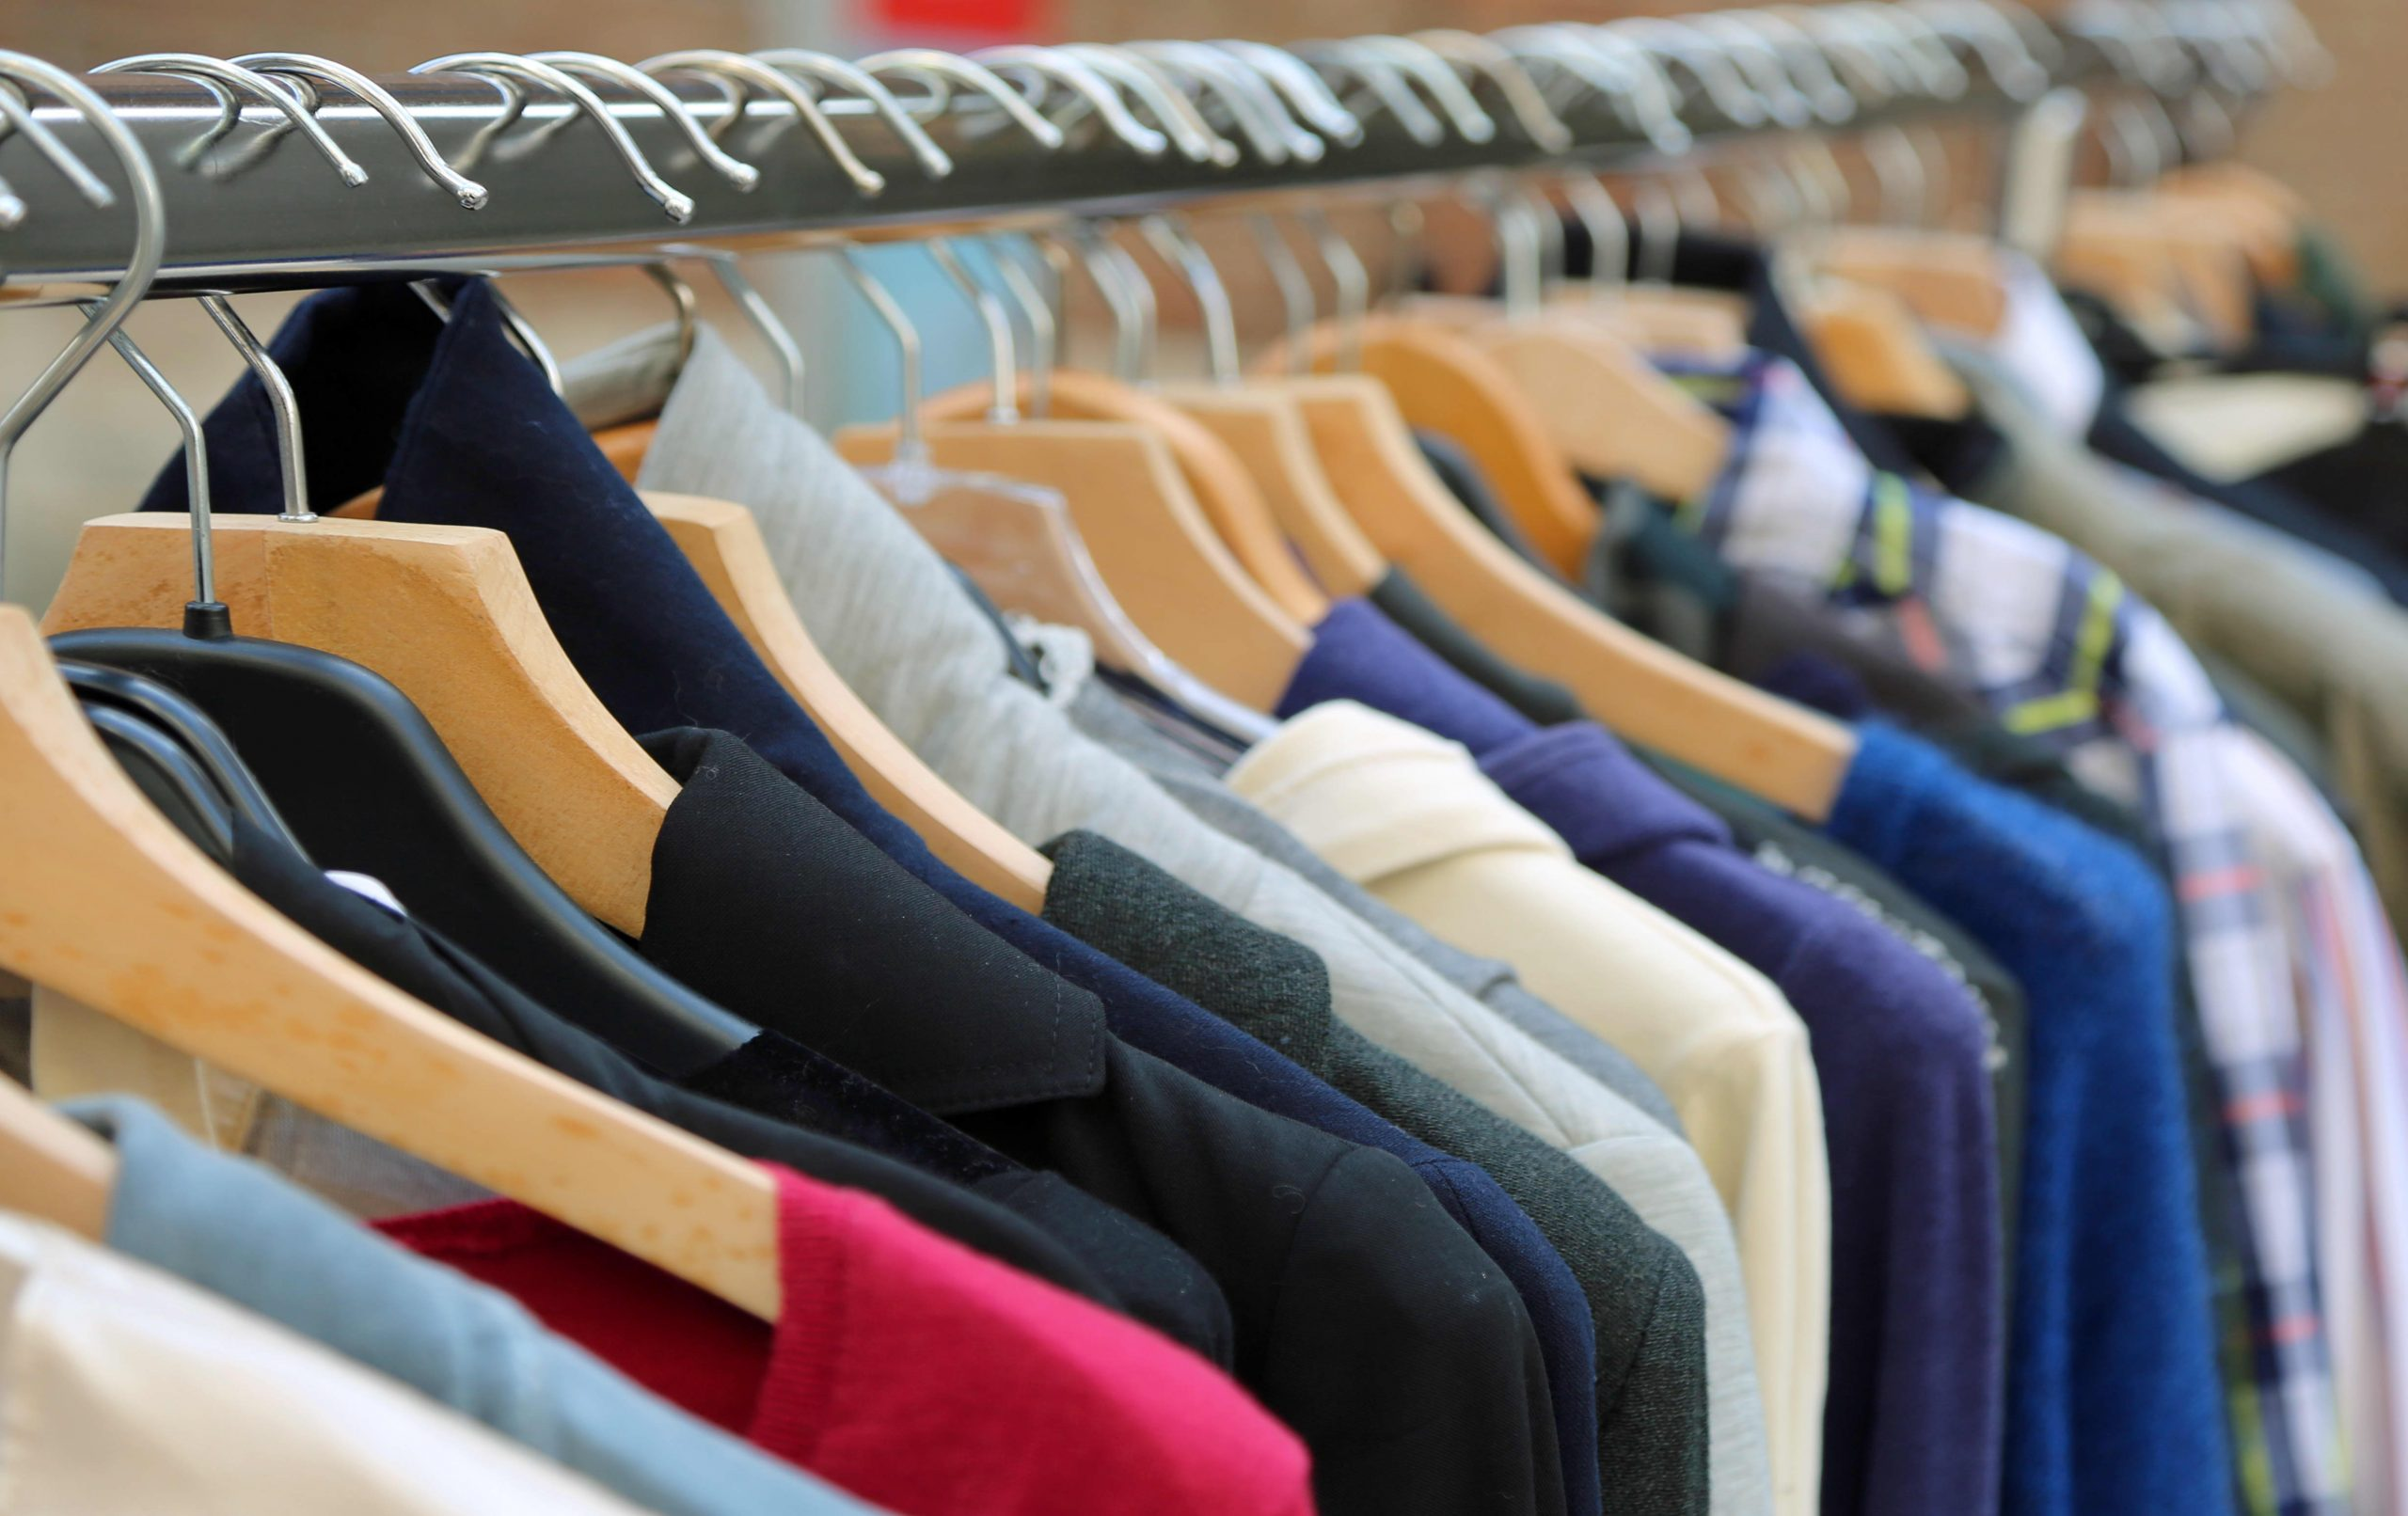 Polyester is one of the biggest polluters in fashion — here's what one CEO wants to do about it